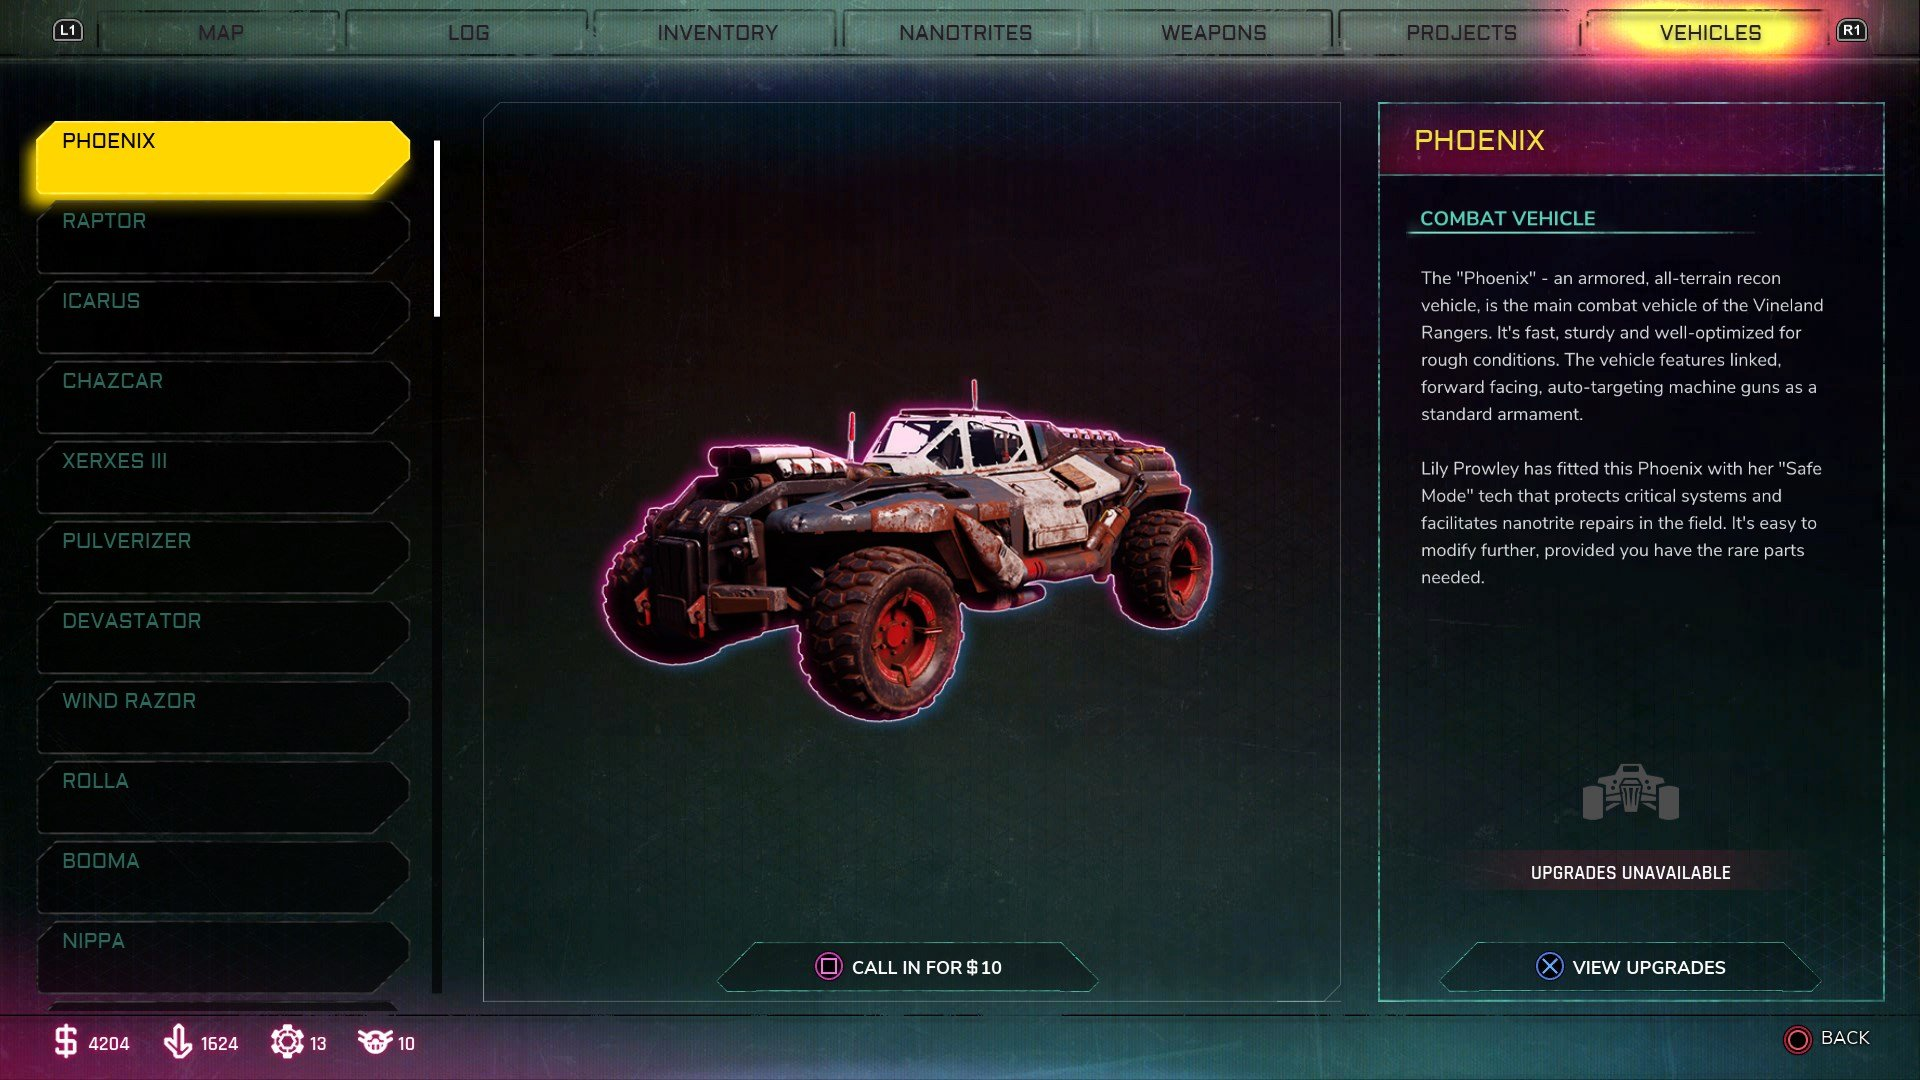 Open your in-game menu and select the Vehicles tab to view a list of available vehicles and upgrades for those vehicles in Rage 2.